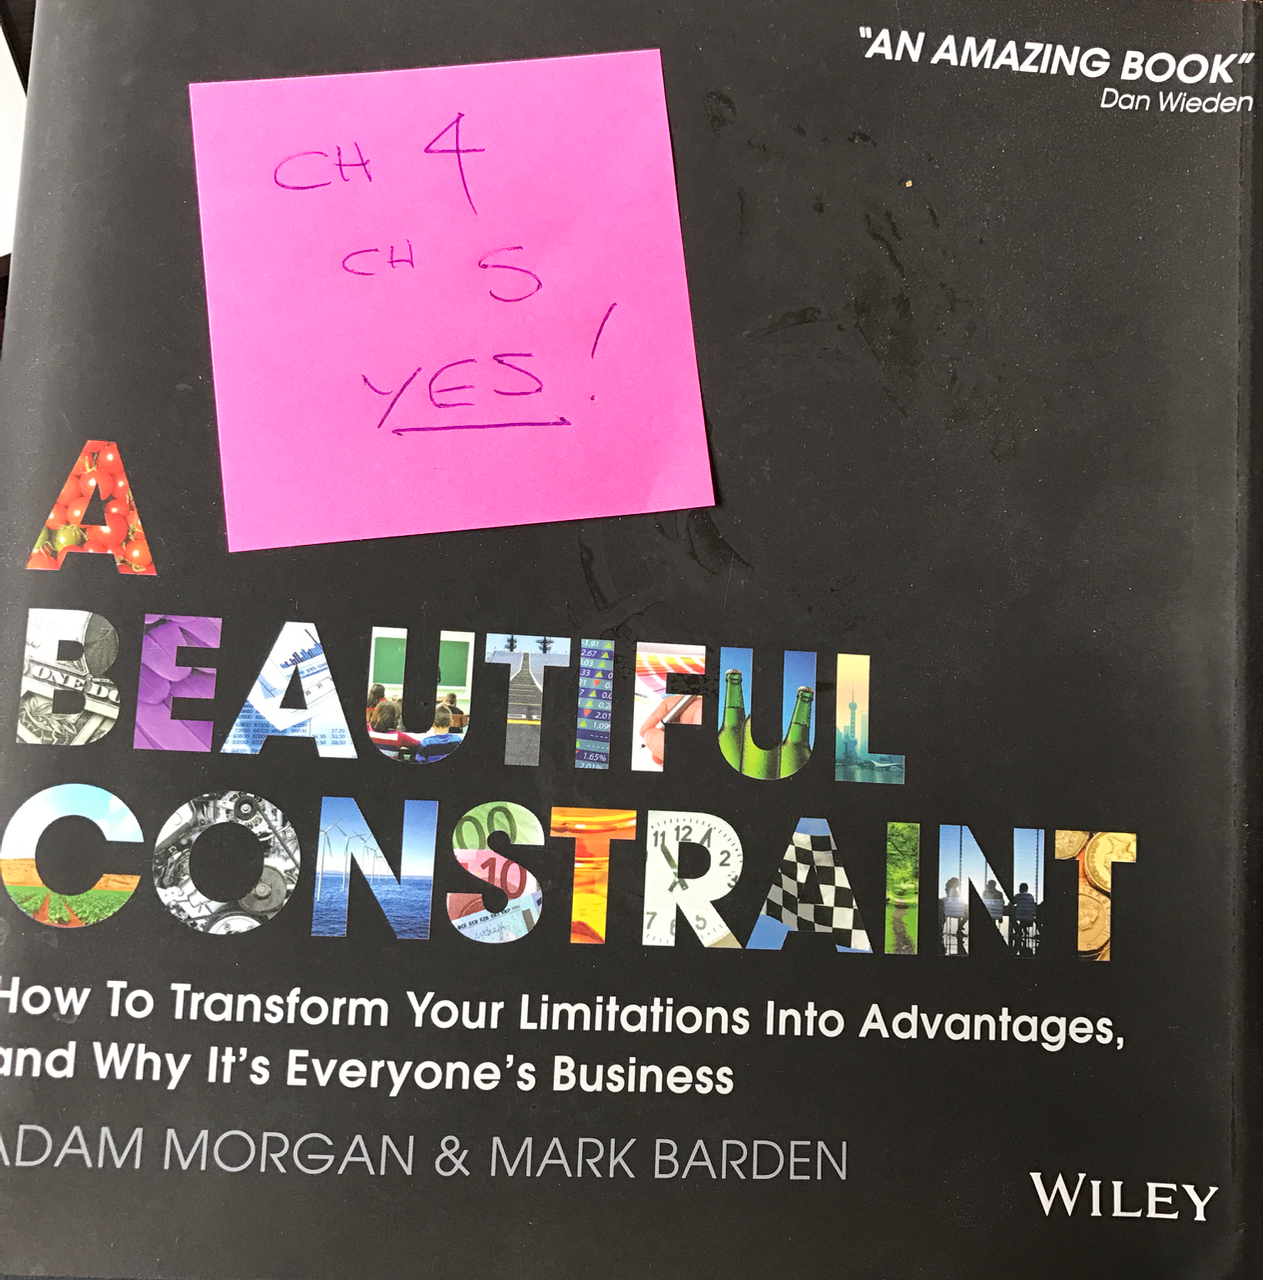 Insights from seven altMBA books – It's Your Turn